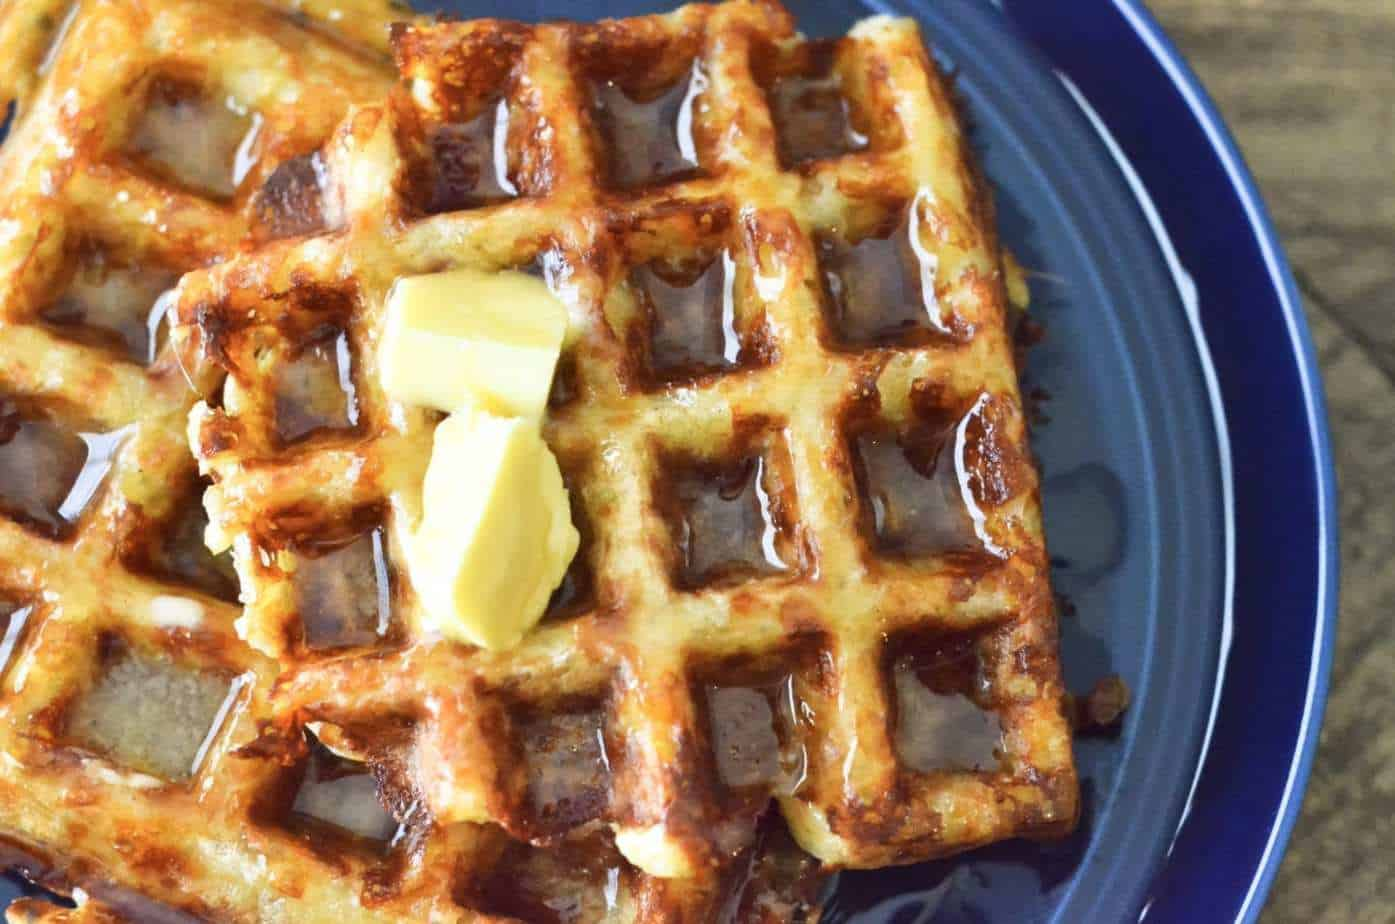 How to make grain-free, low carb keto waffles